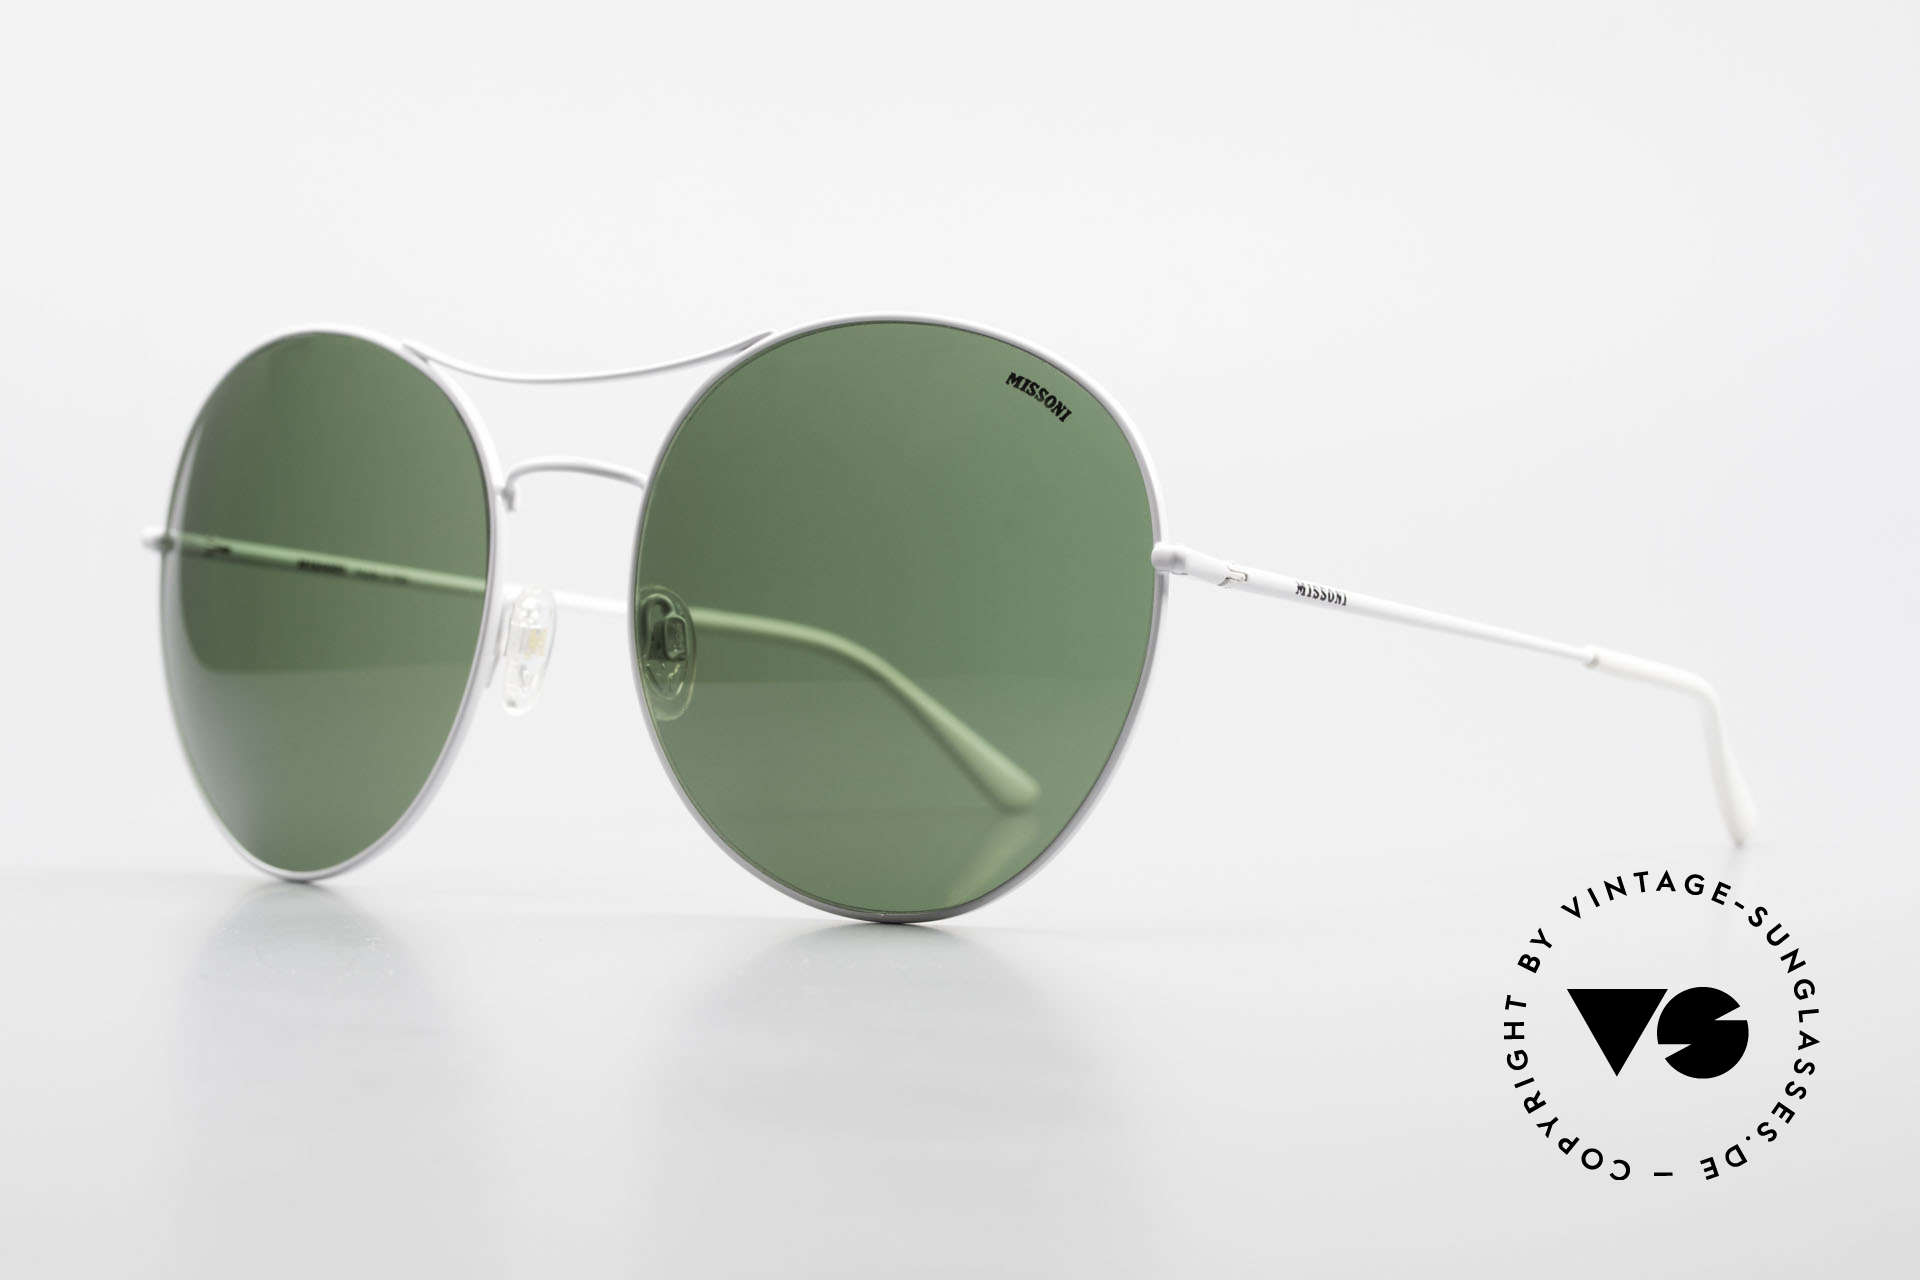 Missoni 0440 Oversized Aviator Sunglasses, true eye-catcher; top comfort thanks to spring hinges, Made for Men and Women